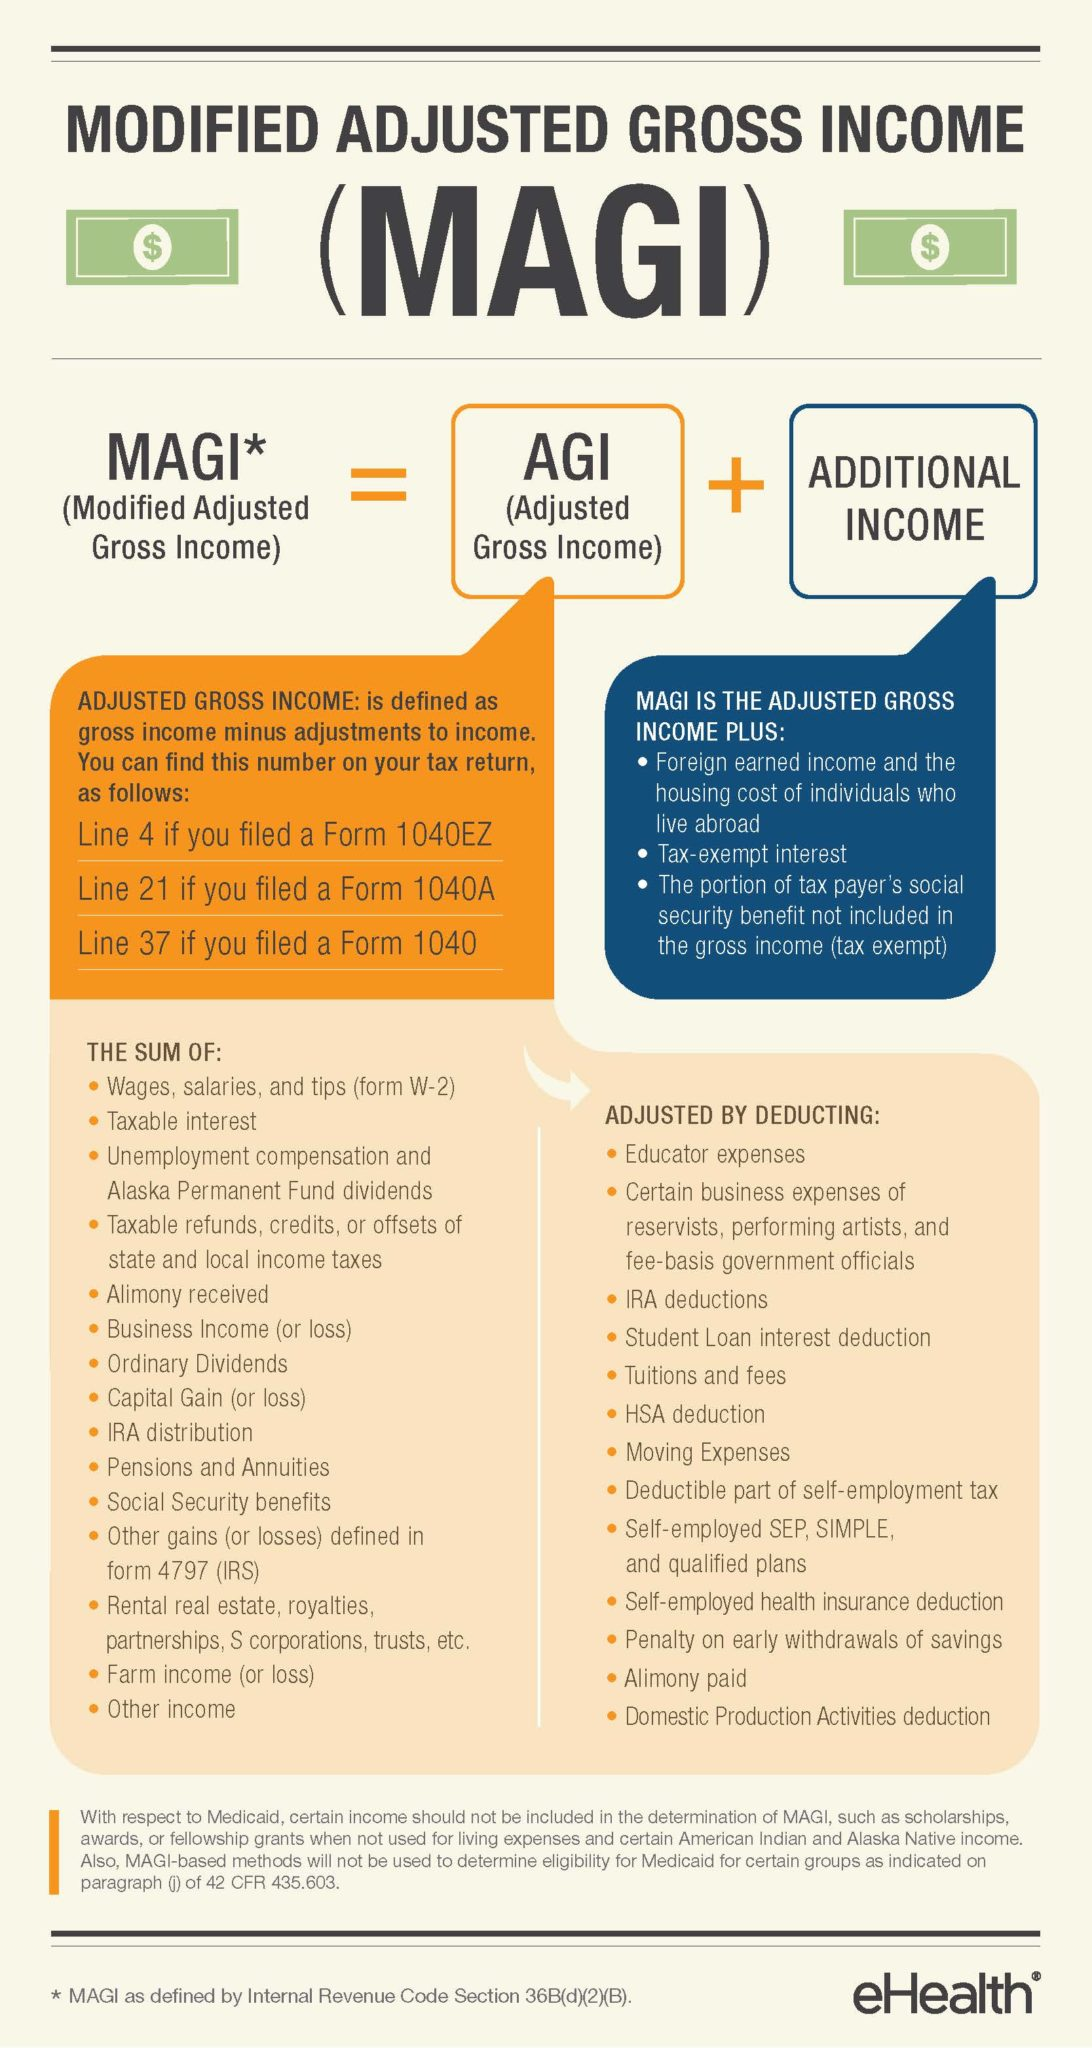 How to calculate modified adjusted gross income